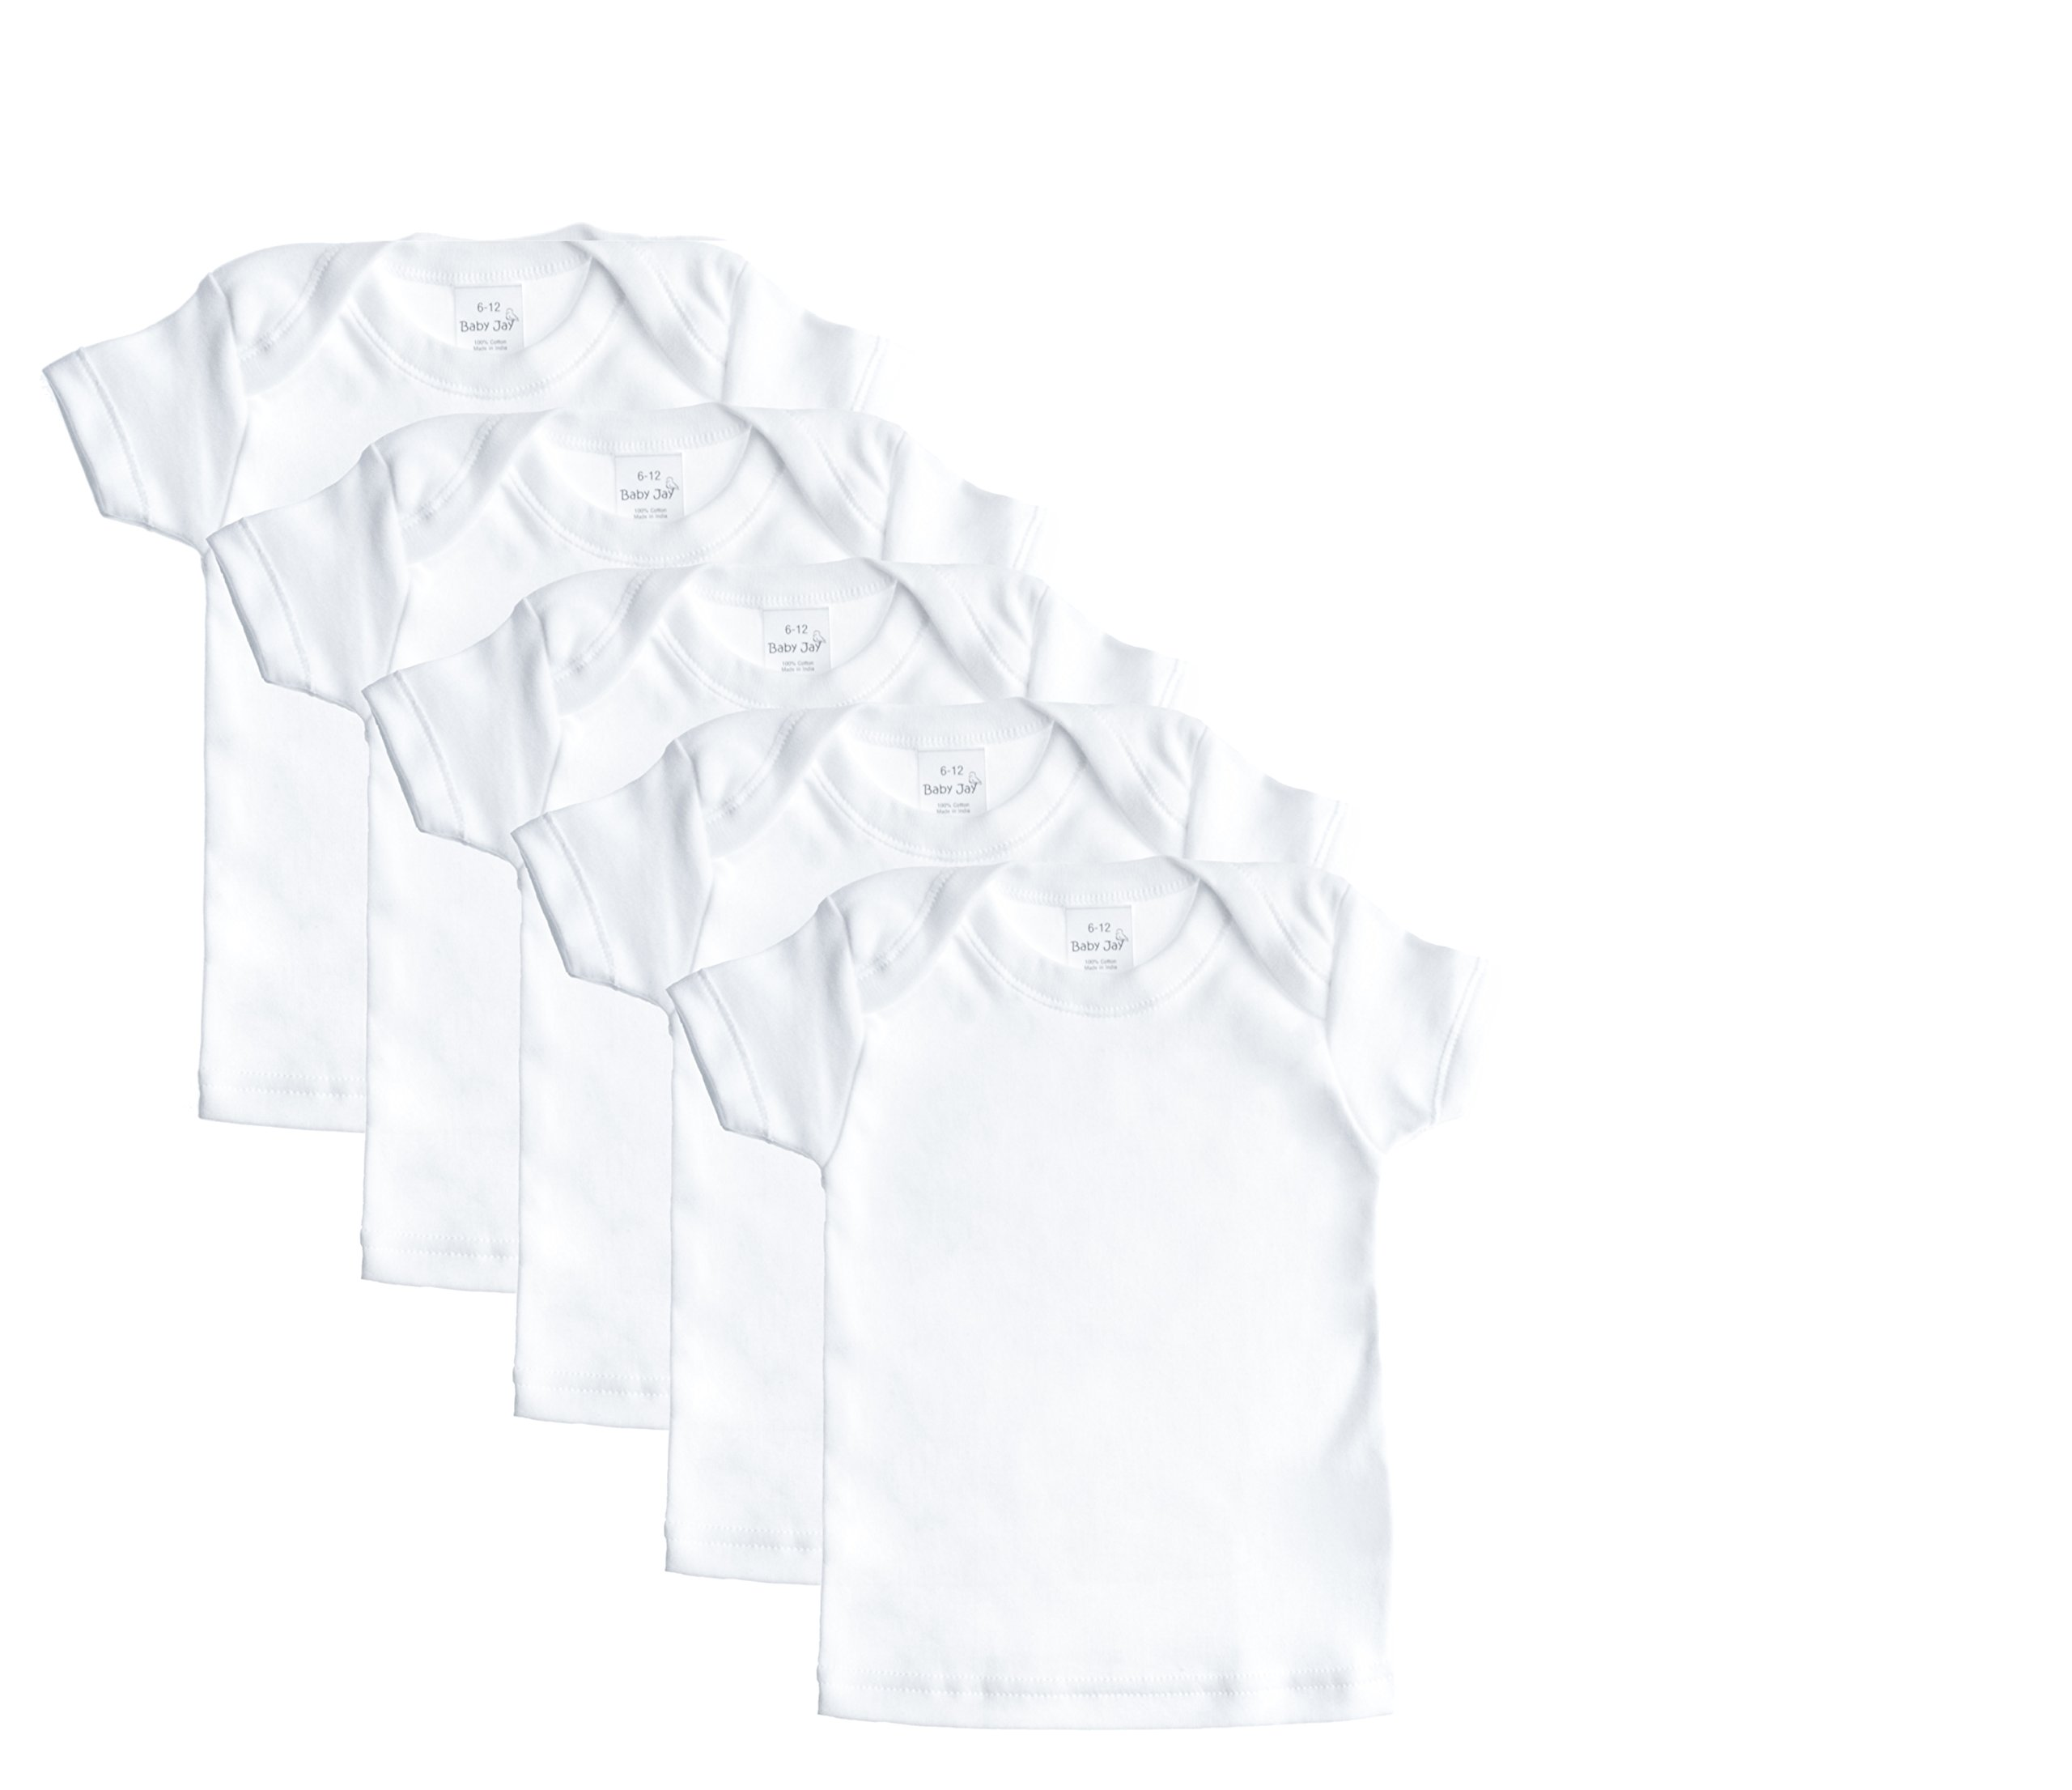 Baby Jay Cotton Undershirt T-Shirt, Short Sleeve Lap Shoulder - WTSE 6-12 5-Pack by Baby Jay (Image #1)